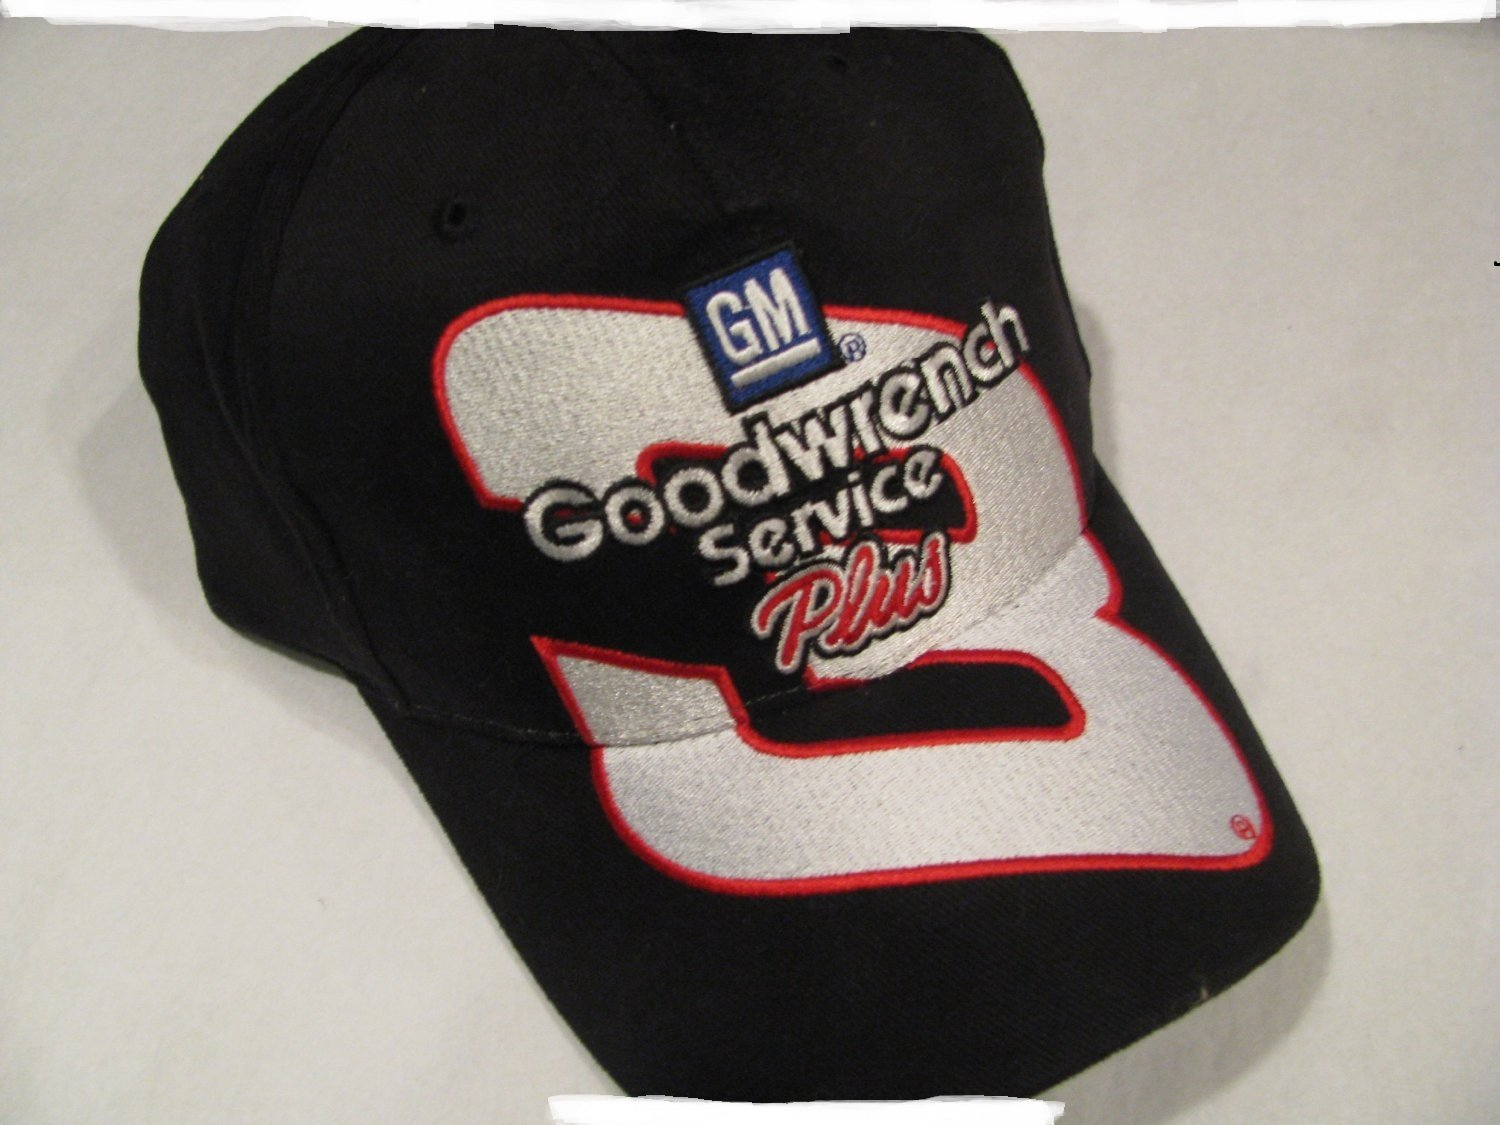 Dale Earnhardt Sr #3 GM Goodwrench Service Large #3 On Brow of Hat Black With Red White Accents Hat Cap One Size Fits Most OSFM Adjustable Plastic Snapback Strap Chase Authentics